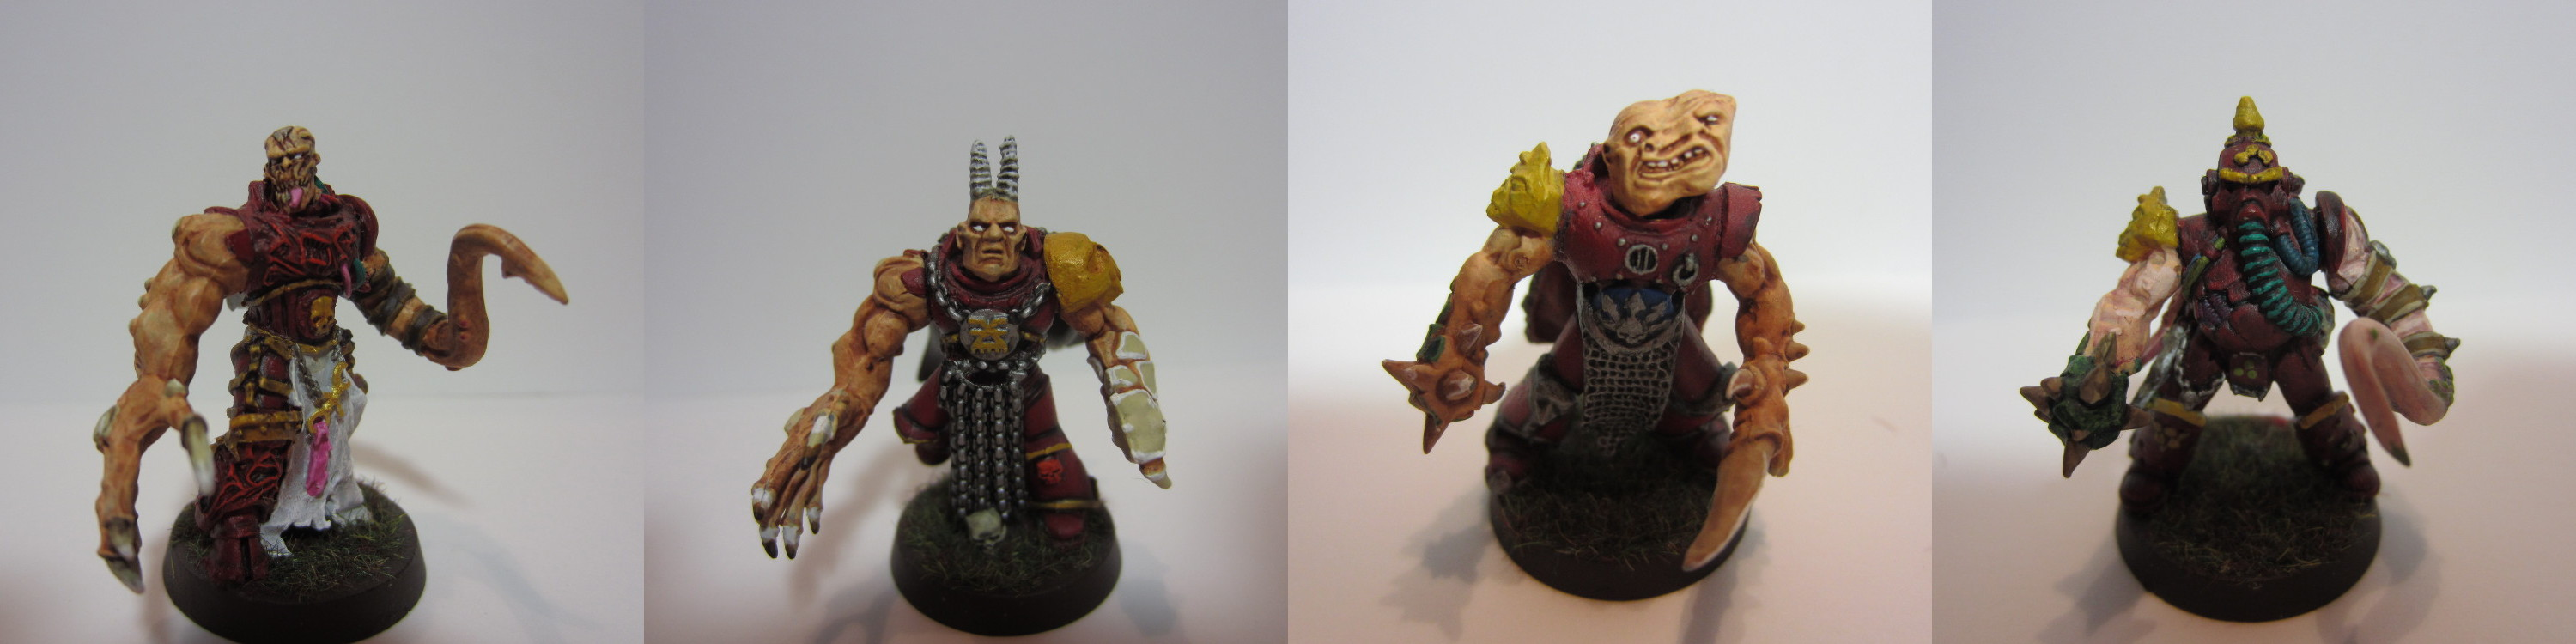 Four Chaos Warriors for a Bloodbowl Team